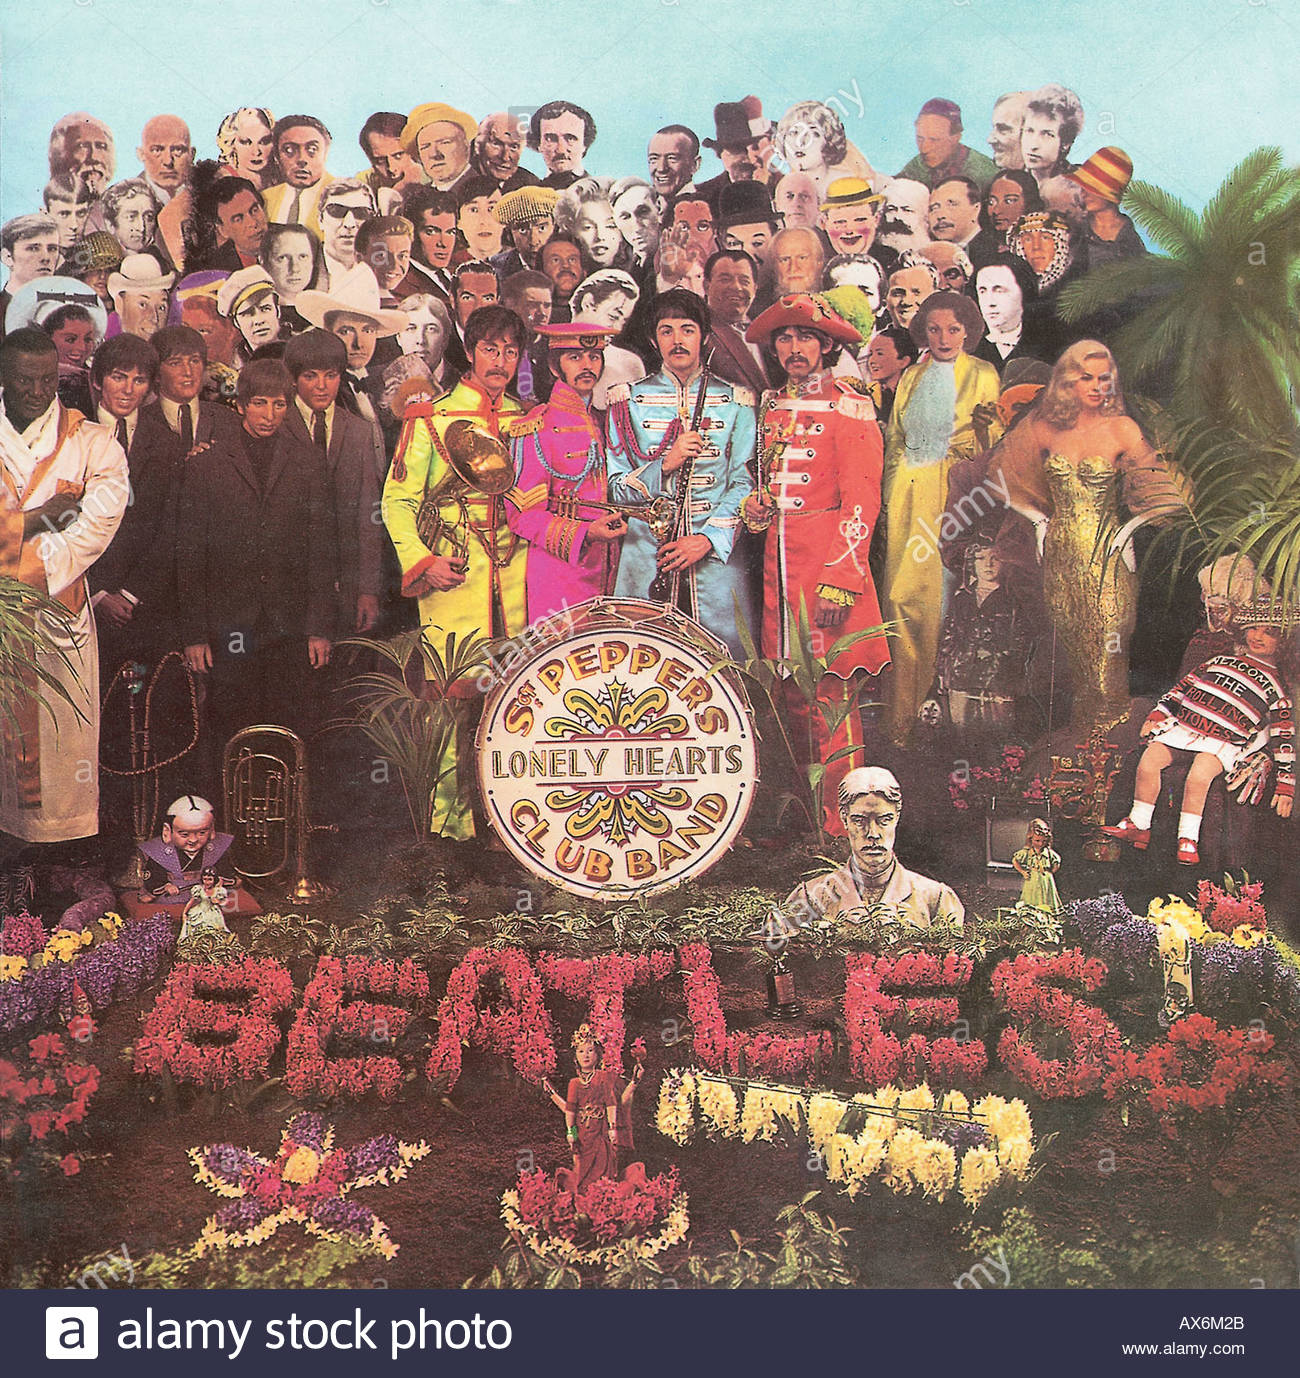 Sgt Peppers Lonely Hearts Club Band Stock Photos & Sgt